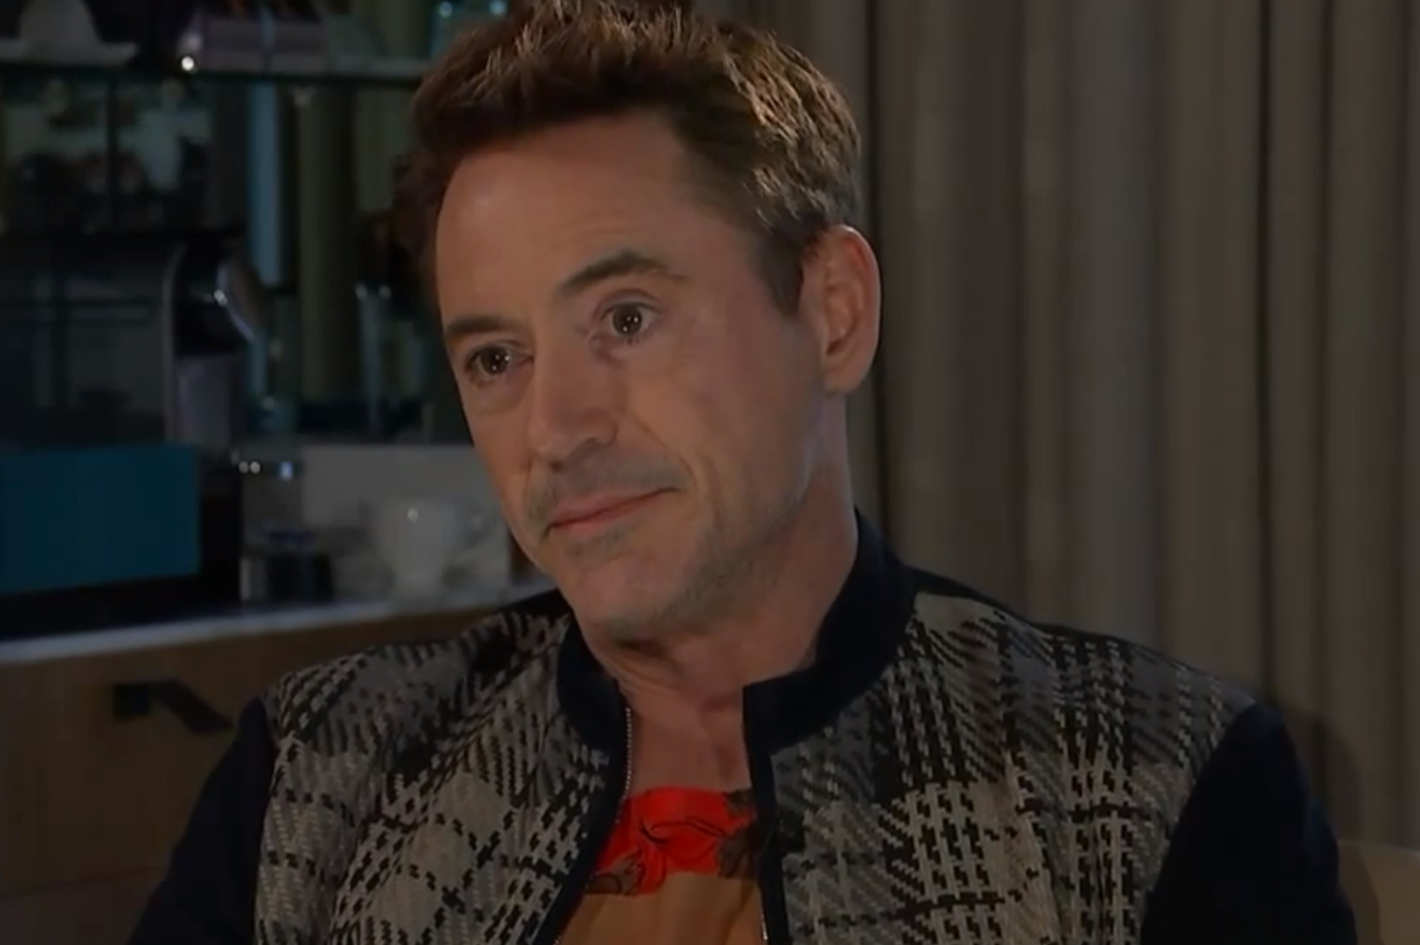 22 rdj The Most Cringe-Worthy Celebrity Interviews Of All Time